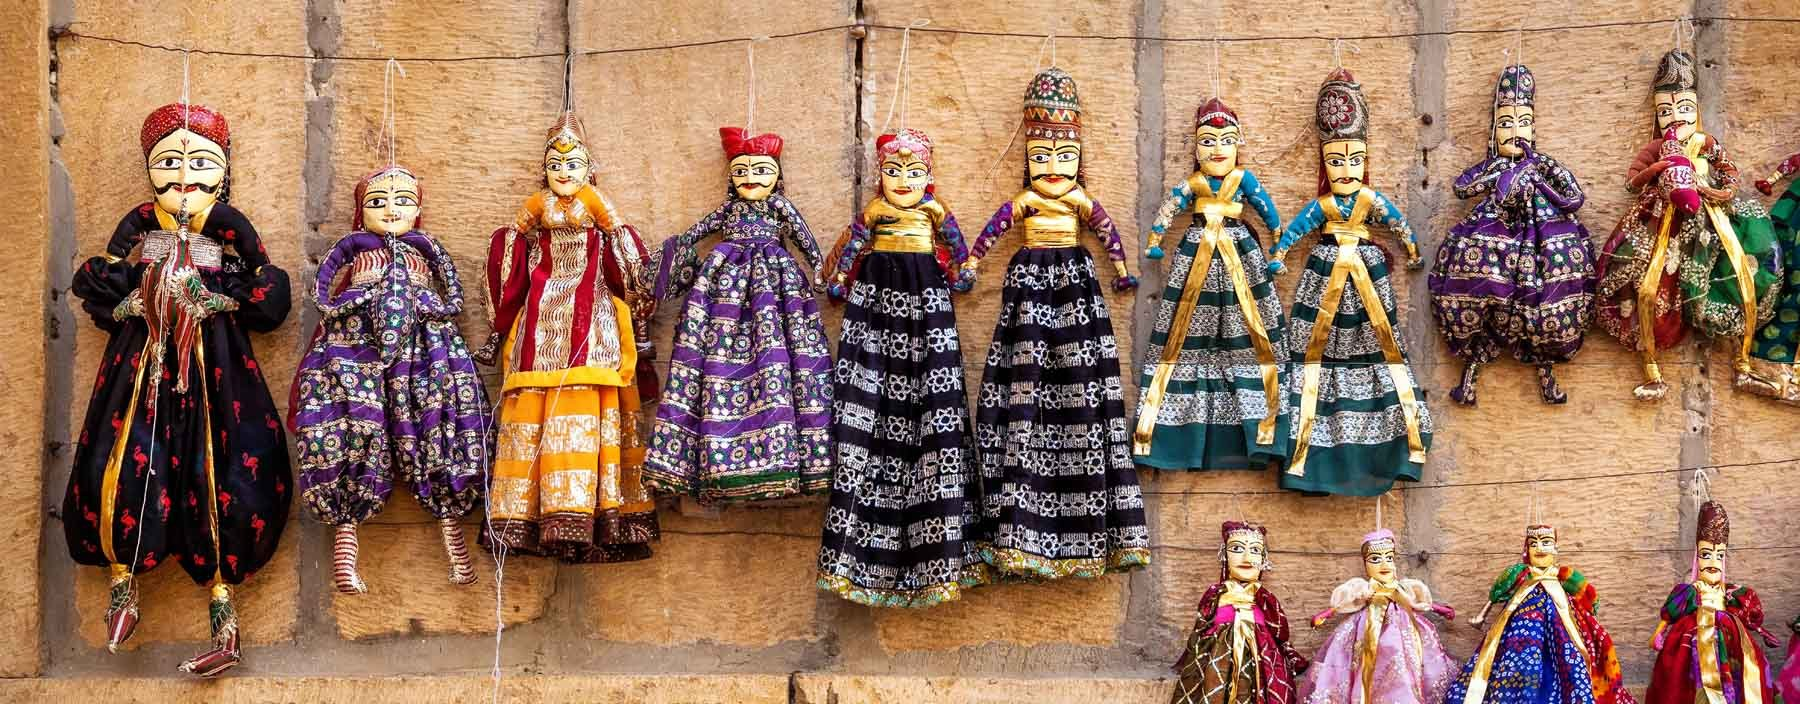 in, jaisalmer, puppets hanging in the shop.jpg